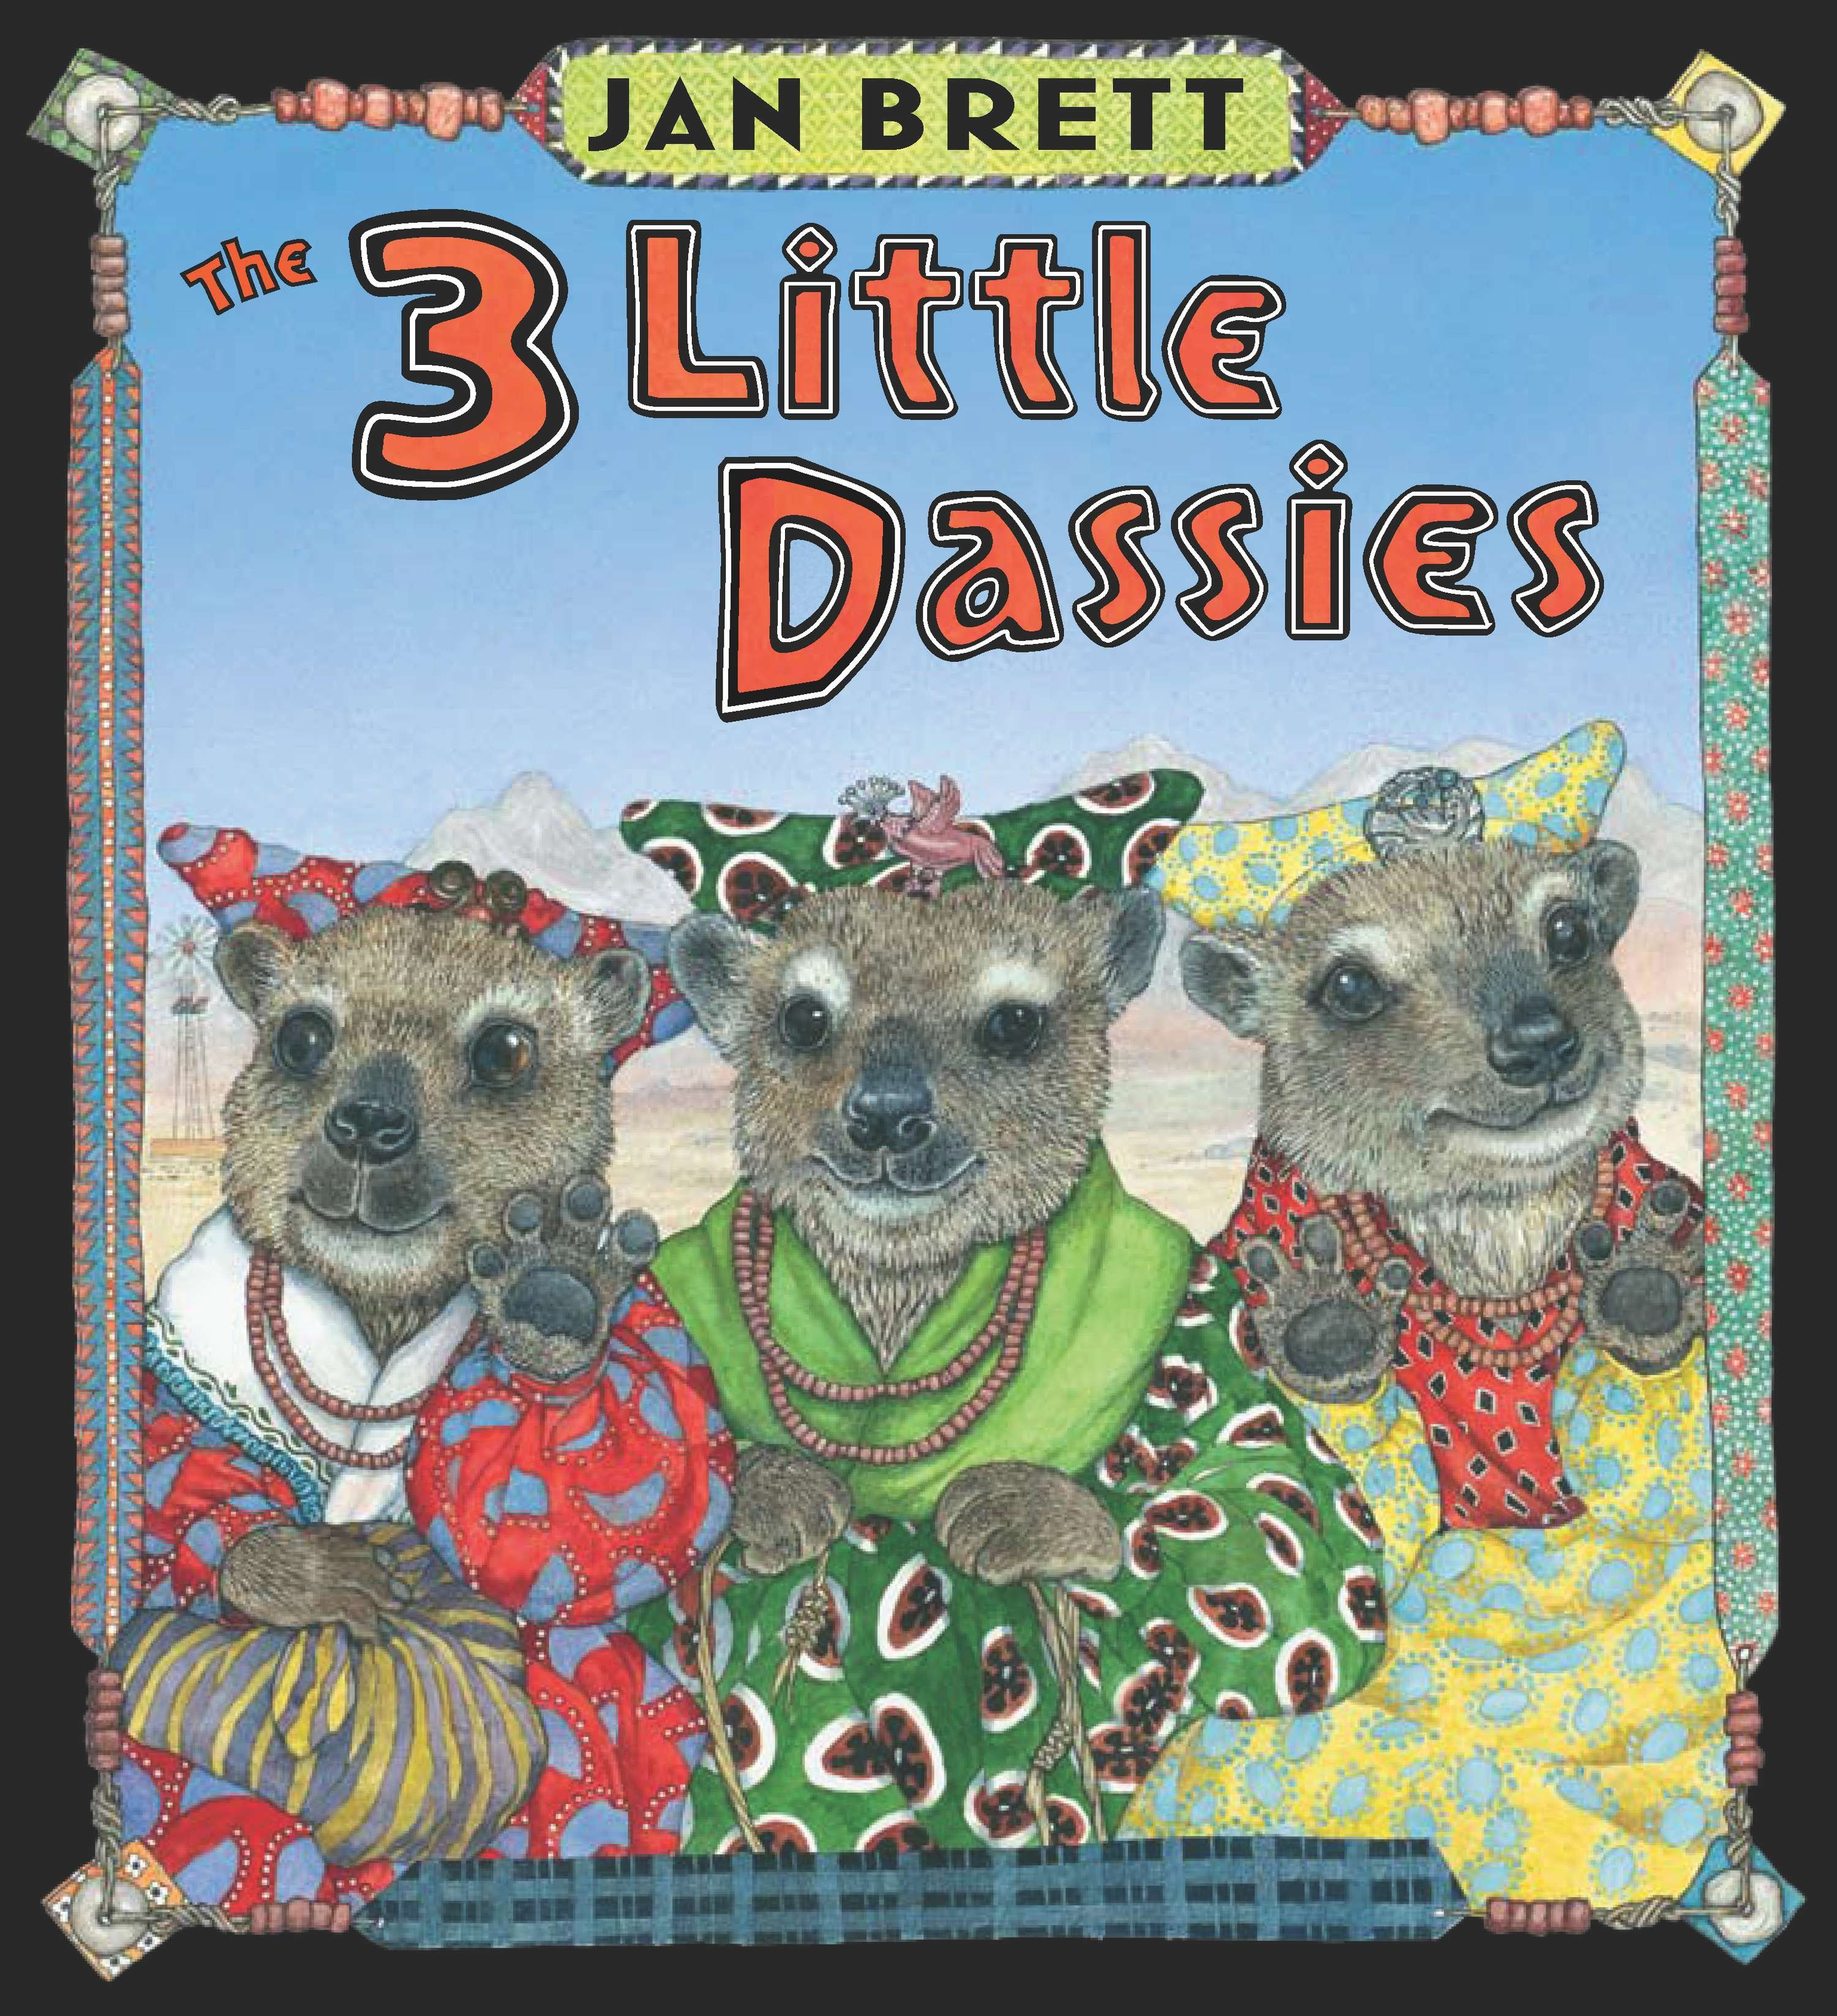 The 3 Little Dassies (Hardcover)